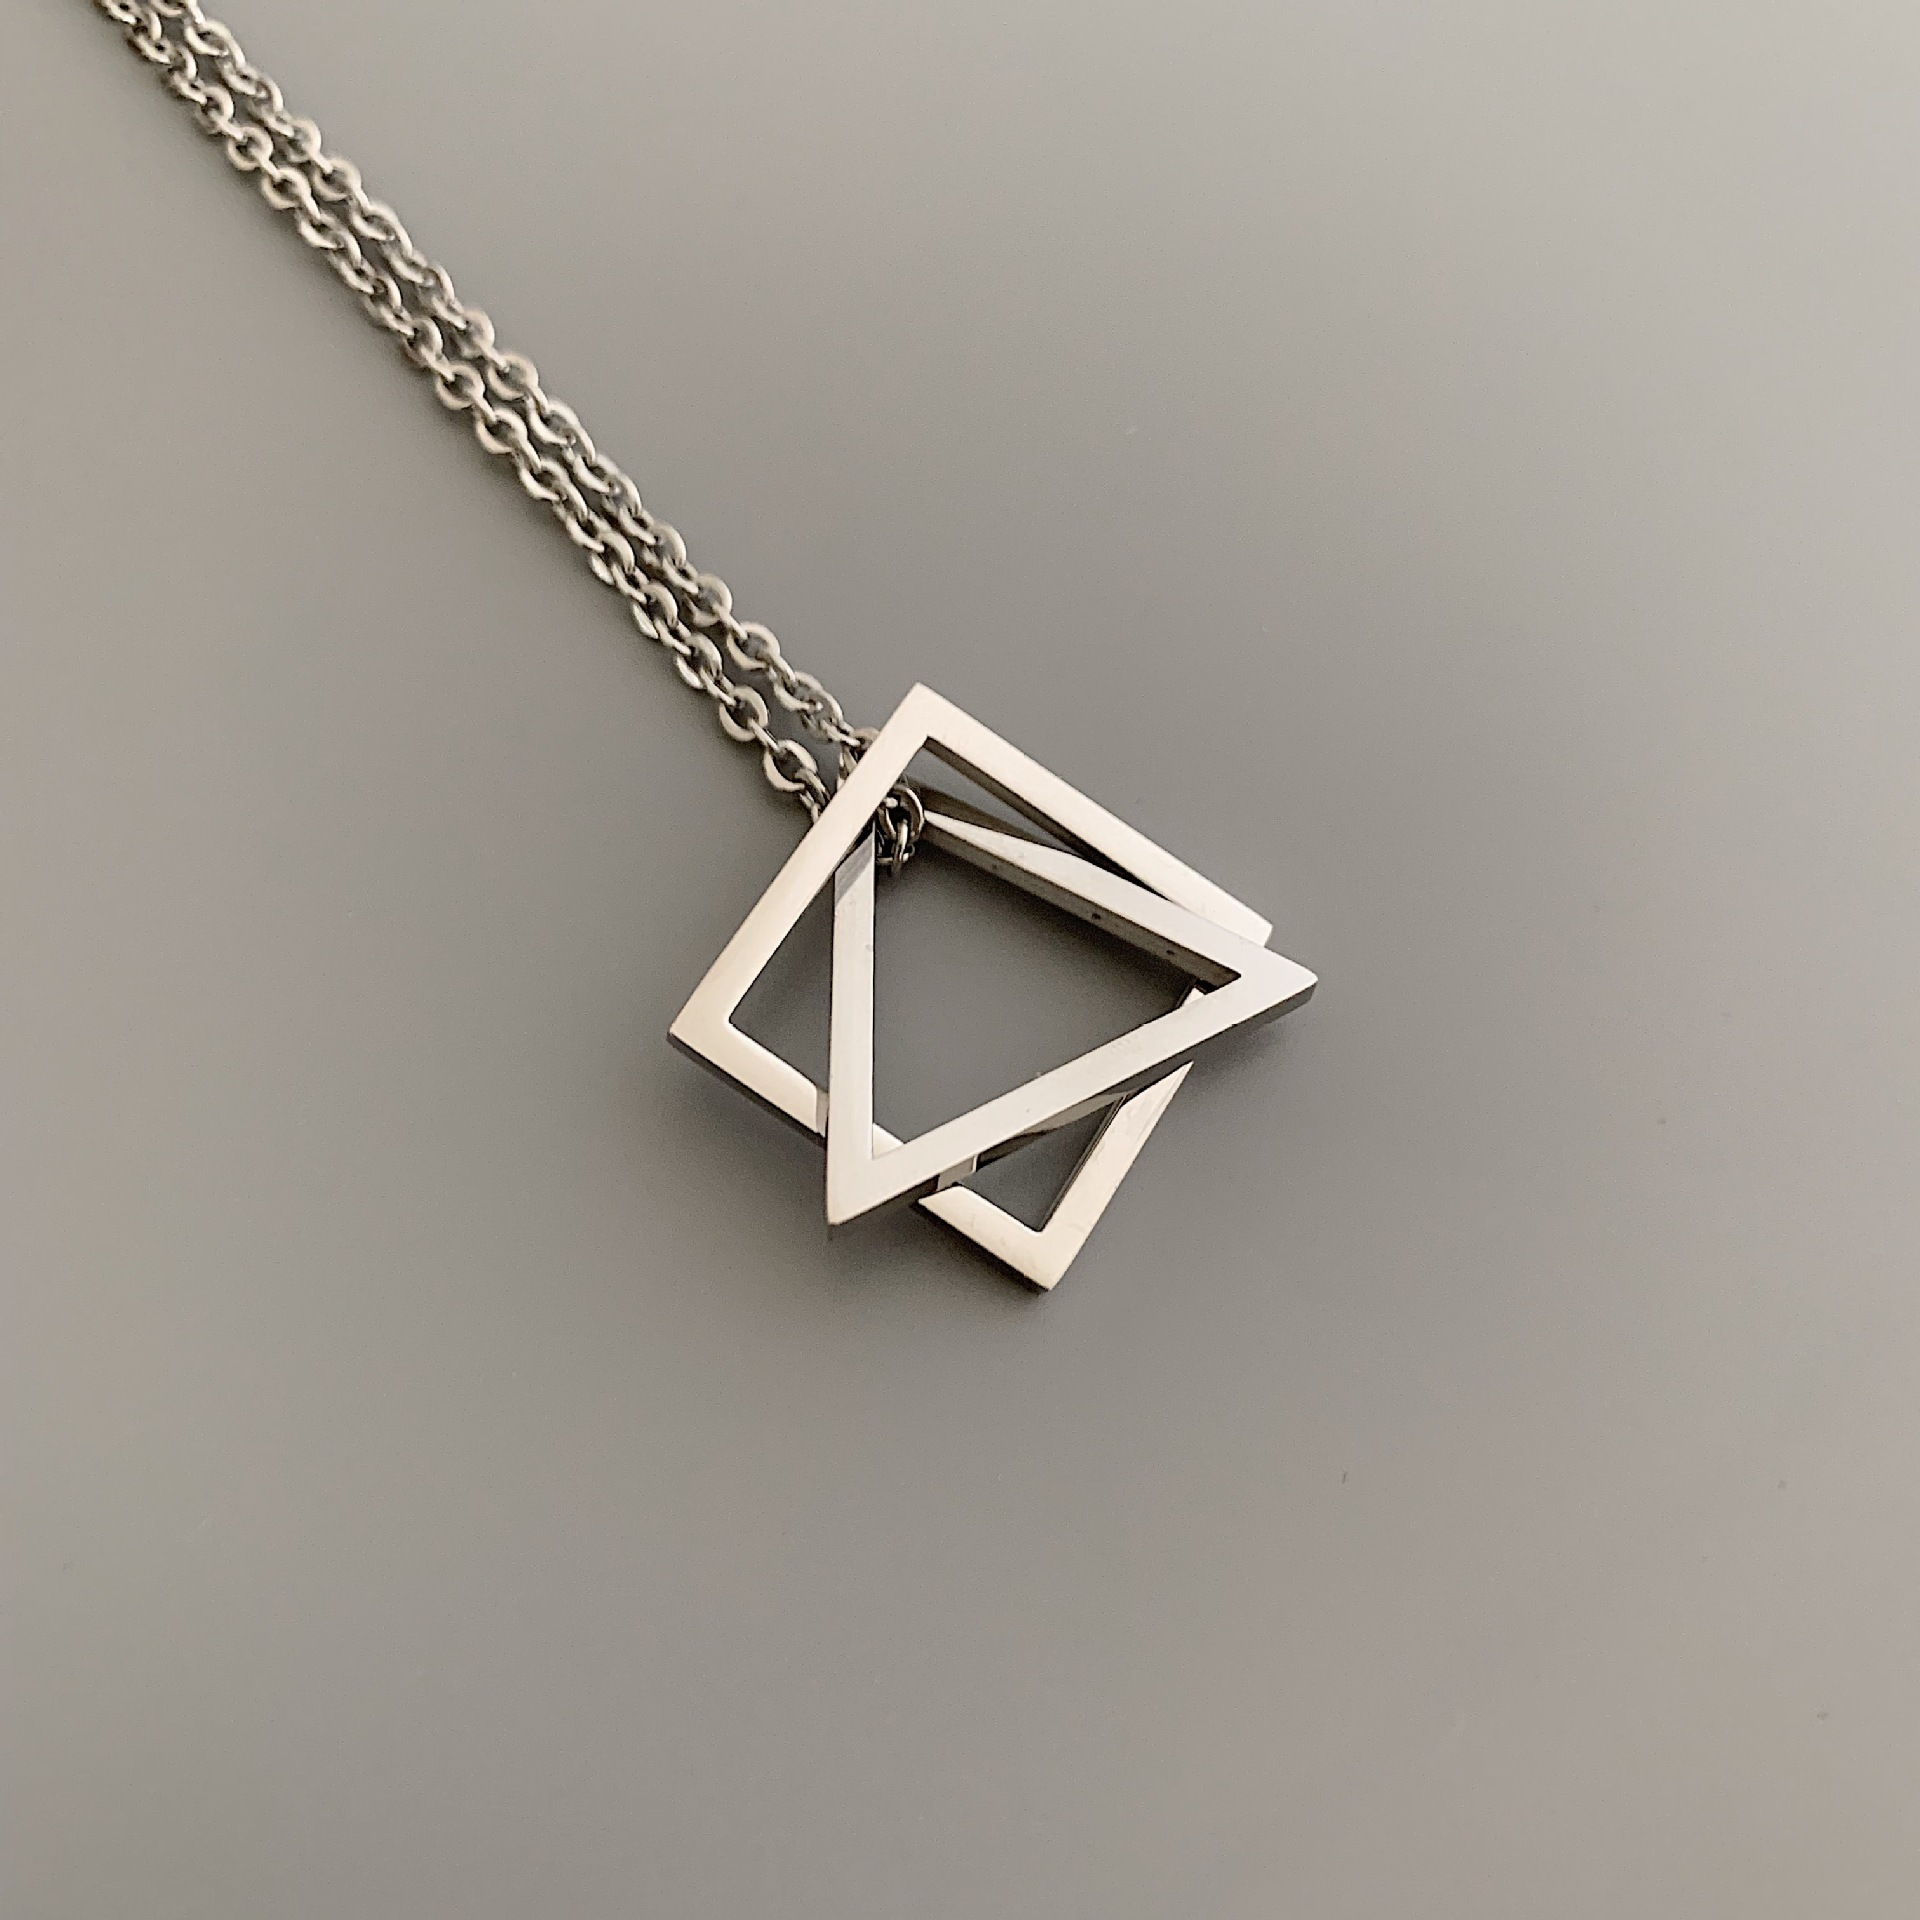 Stylish Titanium Steel Chained Geometric Pendant Necklace for Men and Women's Streetwear Fashion